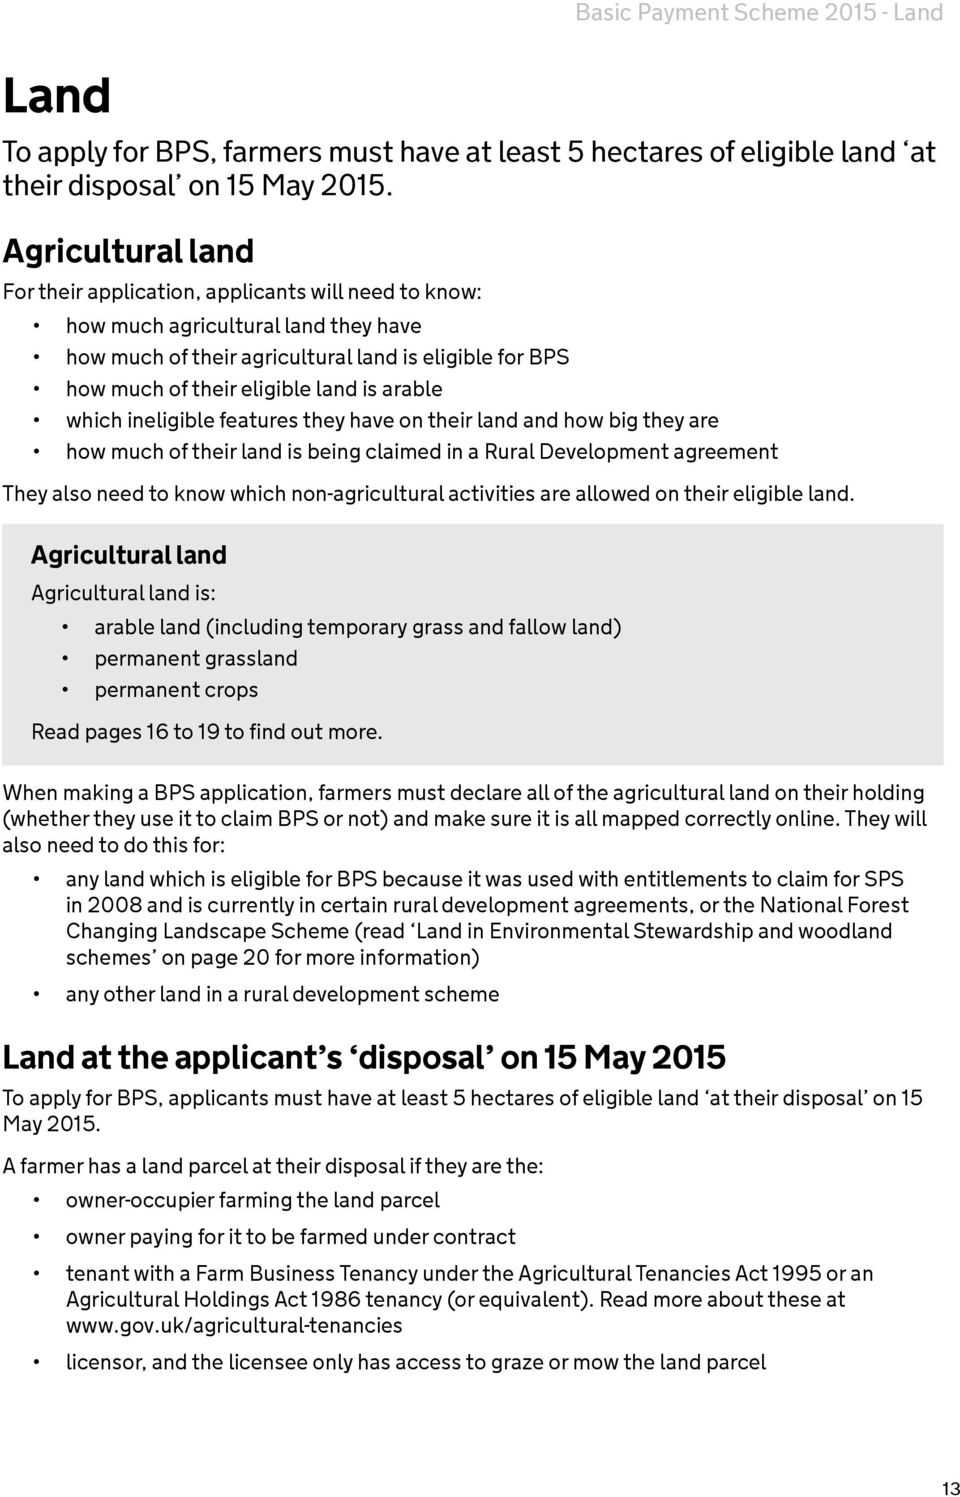 The Basic Payment Scheme In England Pdf